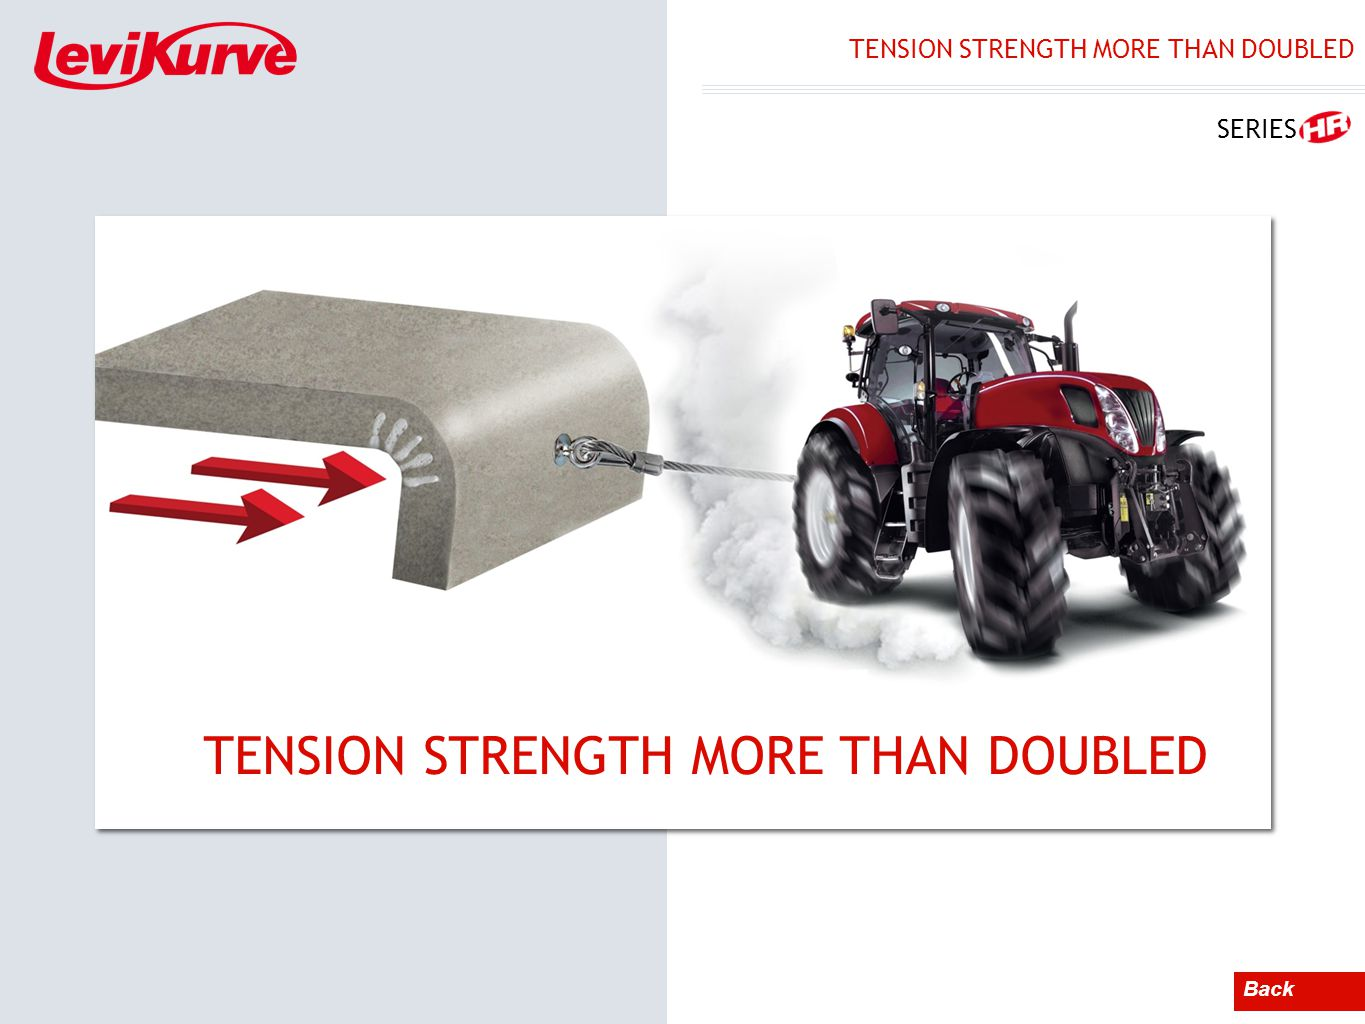 TENSION STRENGTH MORE THAN DOUBLED Back TENSION STRENGTH MORE THAN DOUBLED SERIES